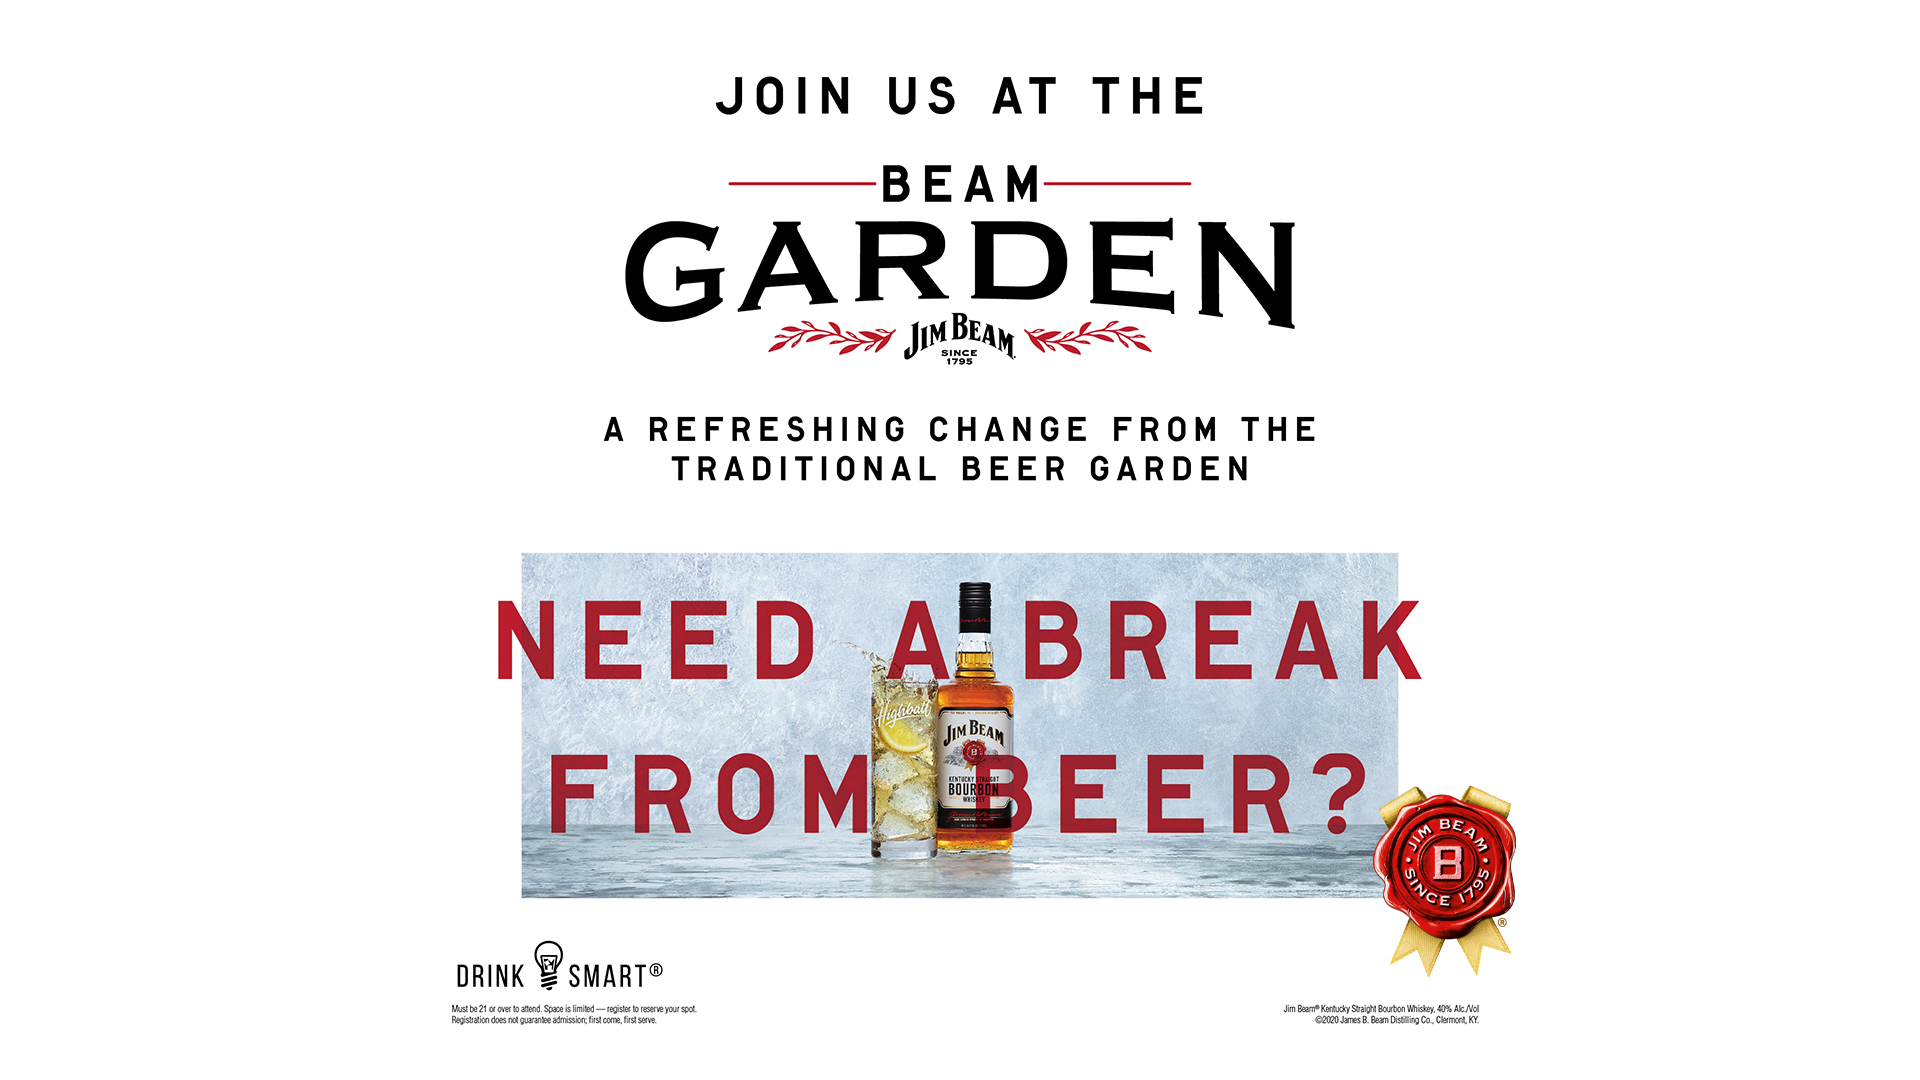 Promo image of Jim Beam® Beam Garden at Legacy Hall